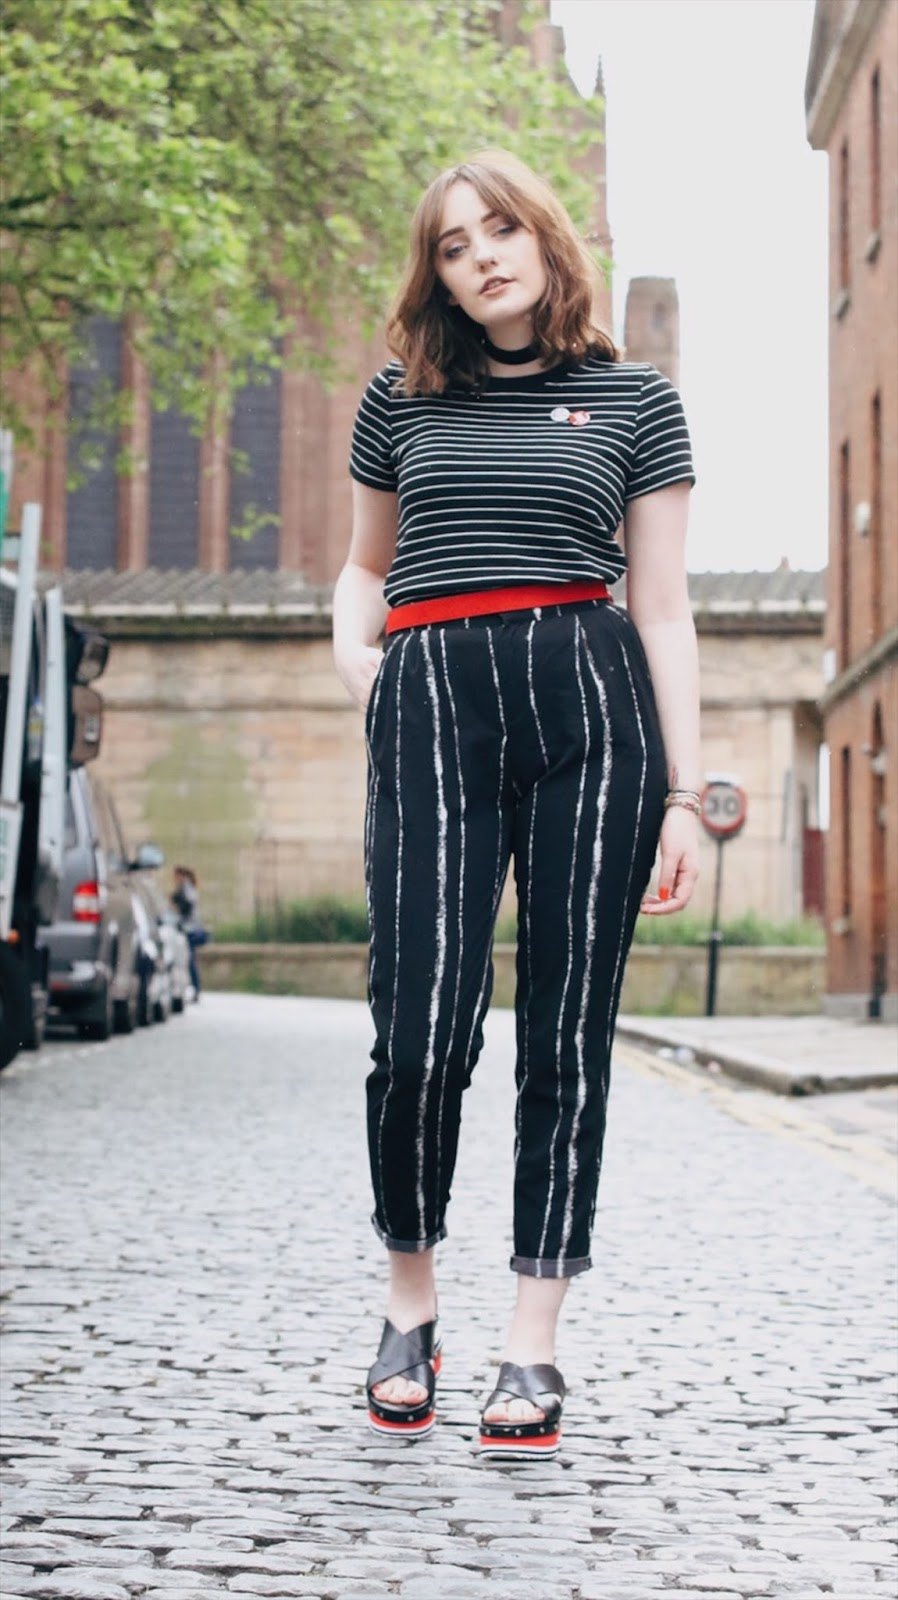 red, black and white outfit by Liverpool style blogger